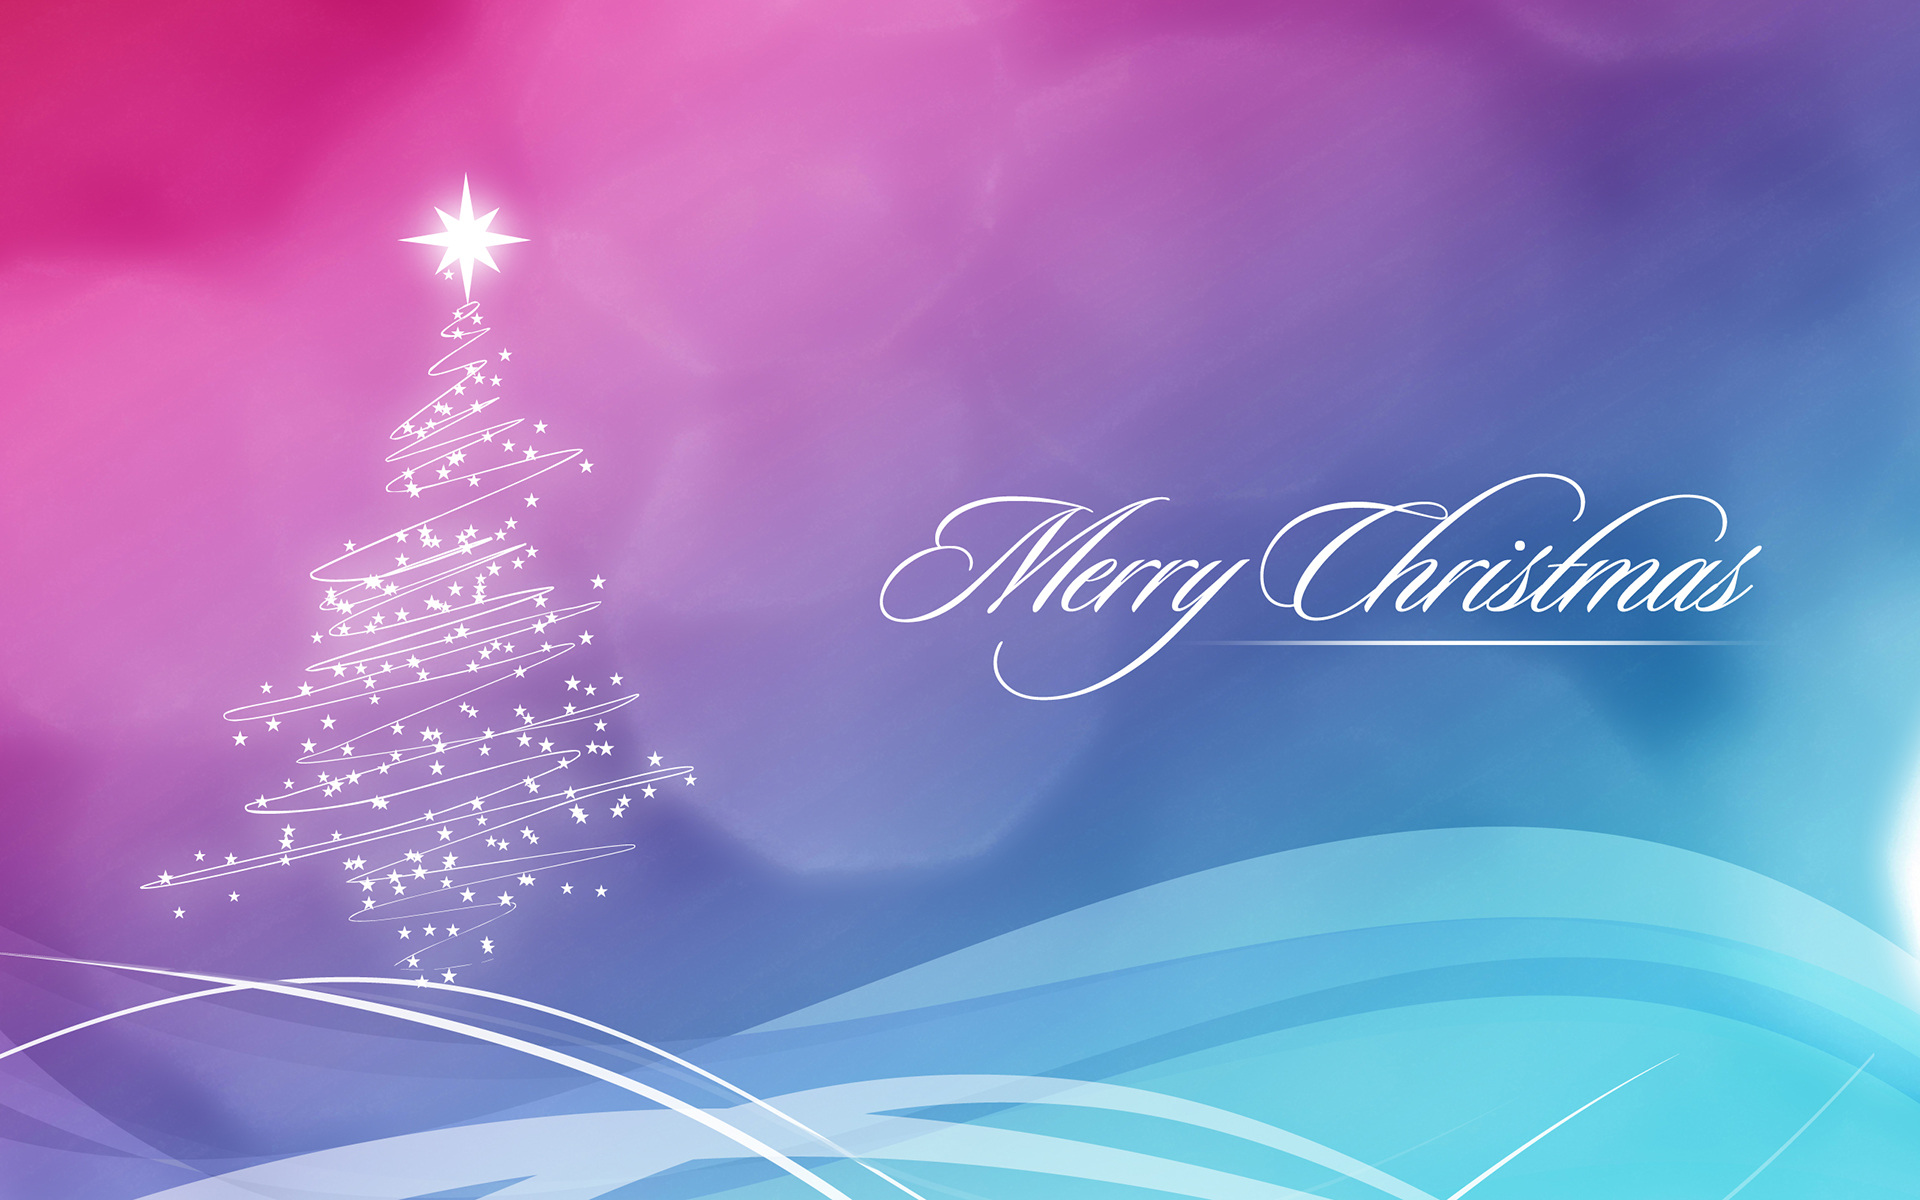 Merry Christmas Wallpapers 2016 HD Pictures – One HD Wallpaper